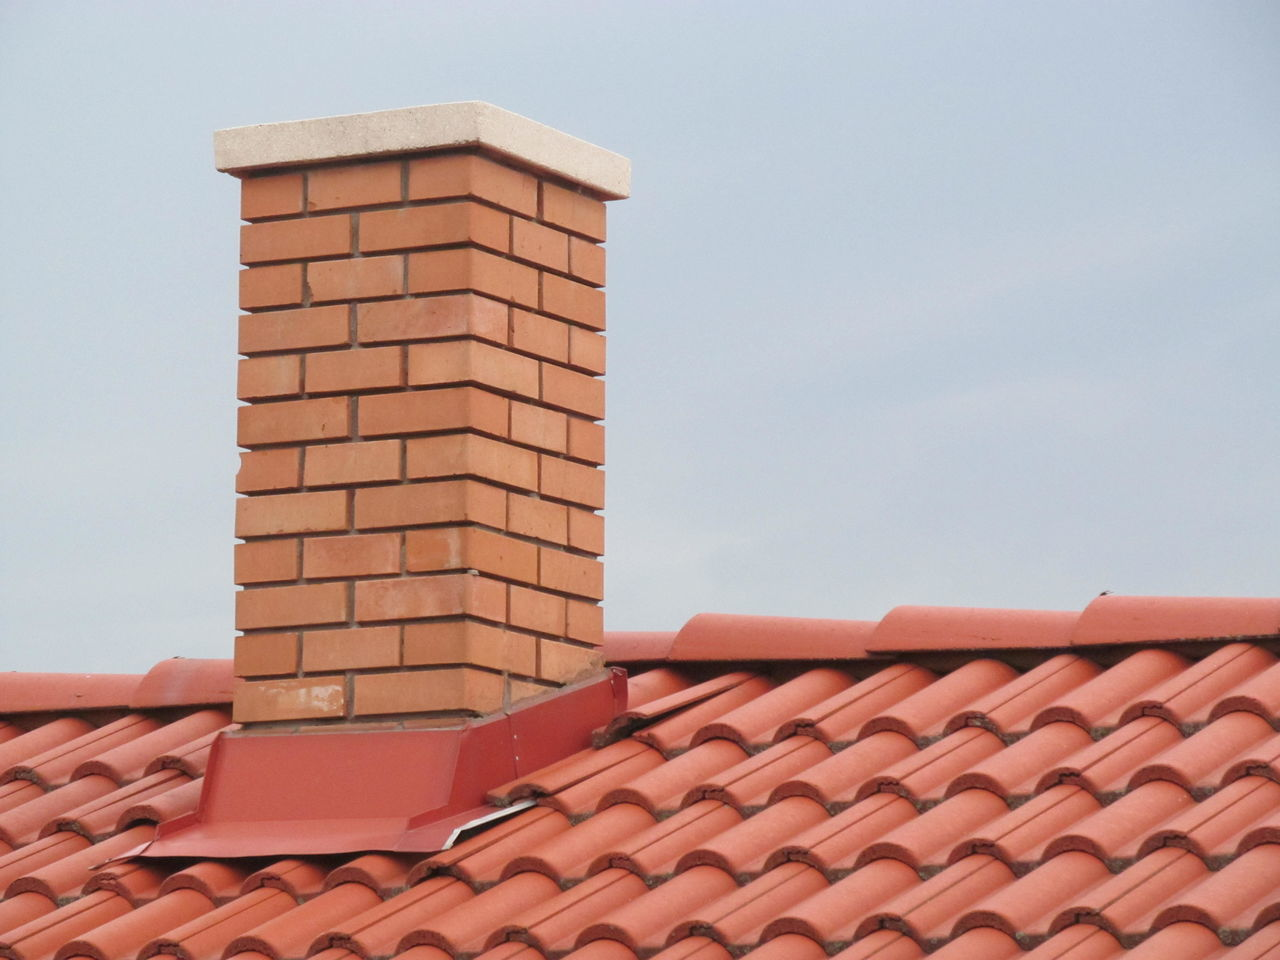 Chimney before winter Brick Bricks Building Chimney Houseroof Roof Tile